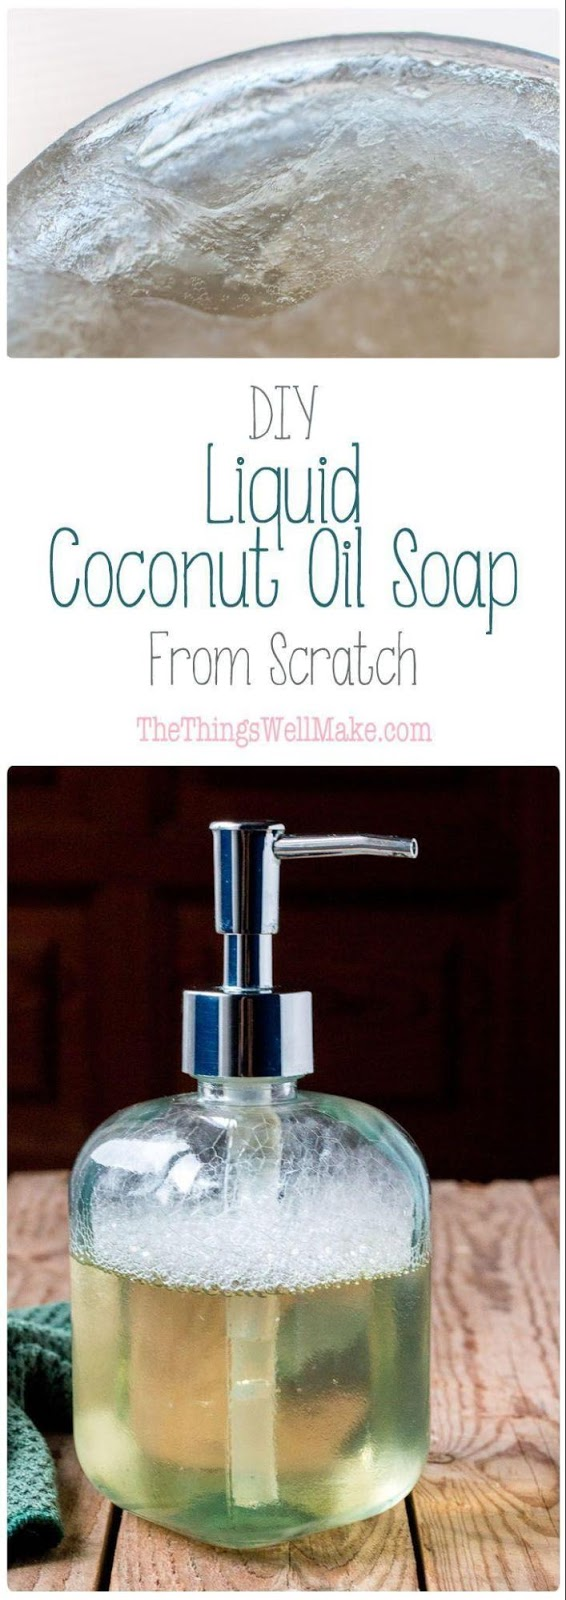 Enjoy natural soaps and body wash with coconut oils